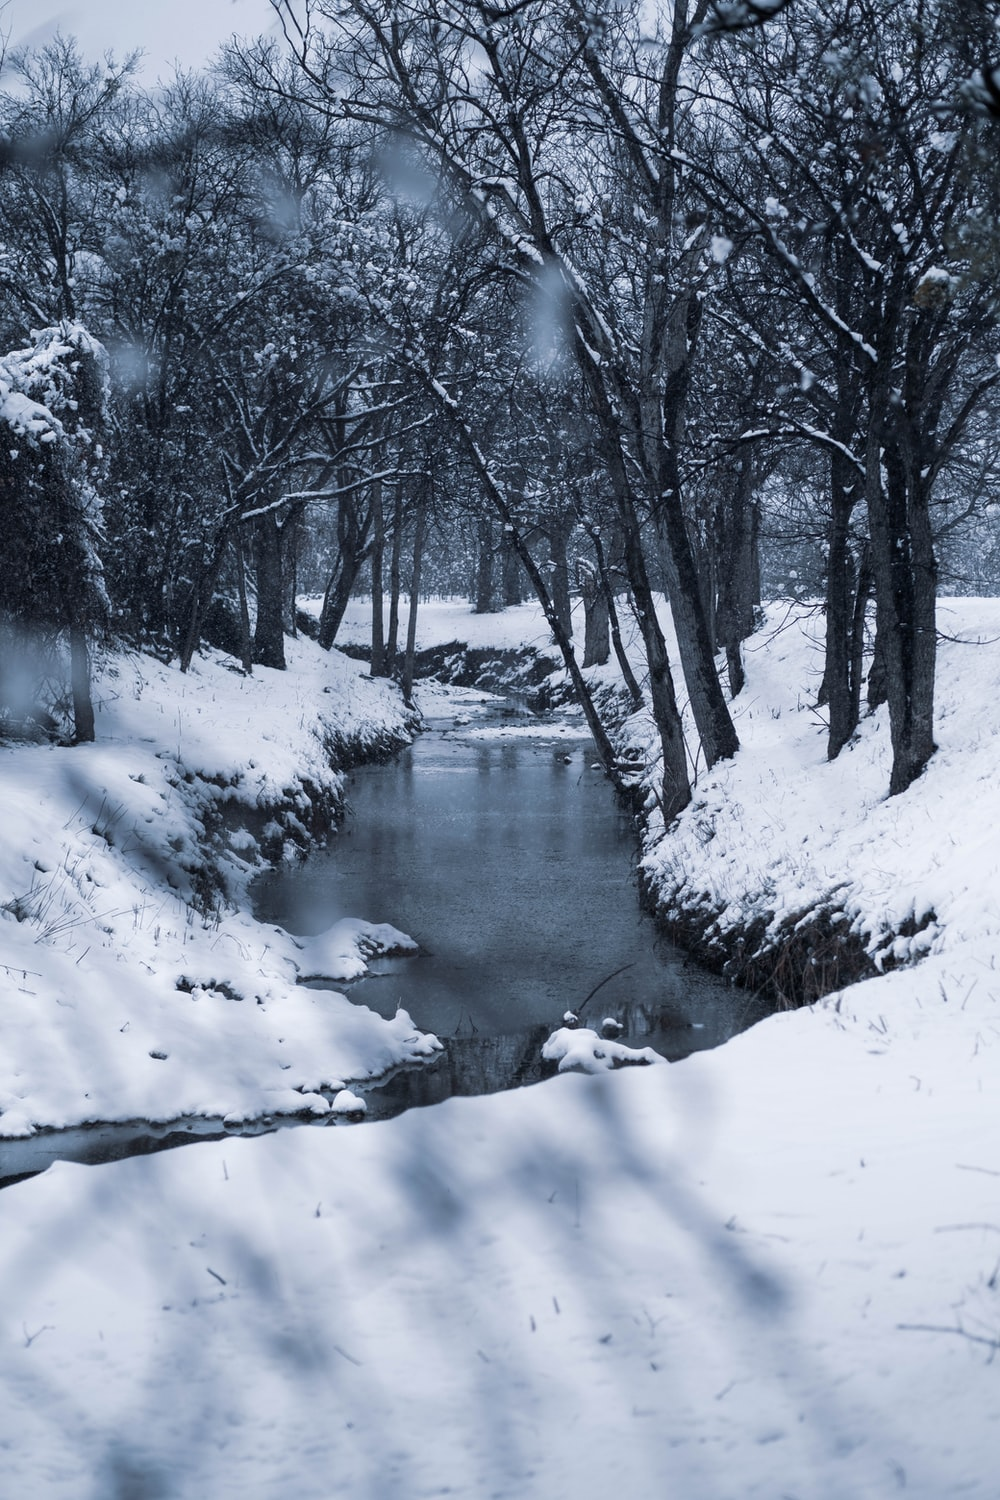 snow covered trees and river